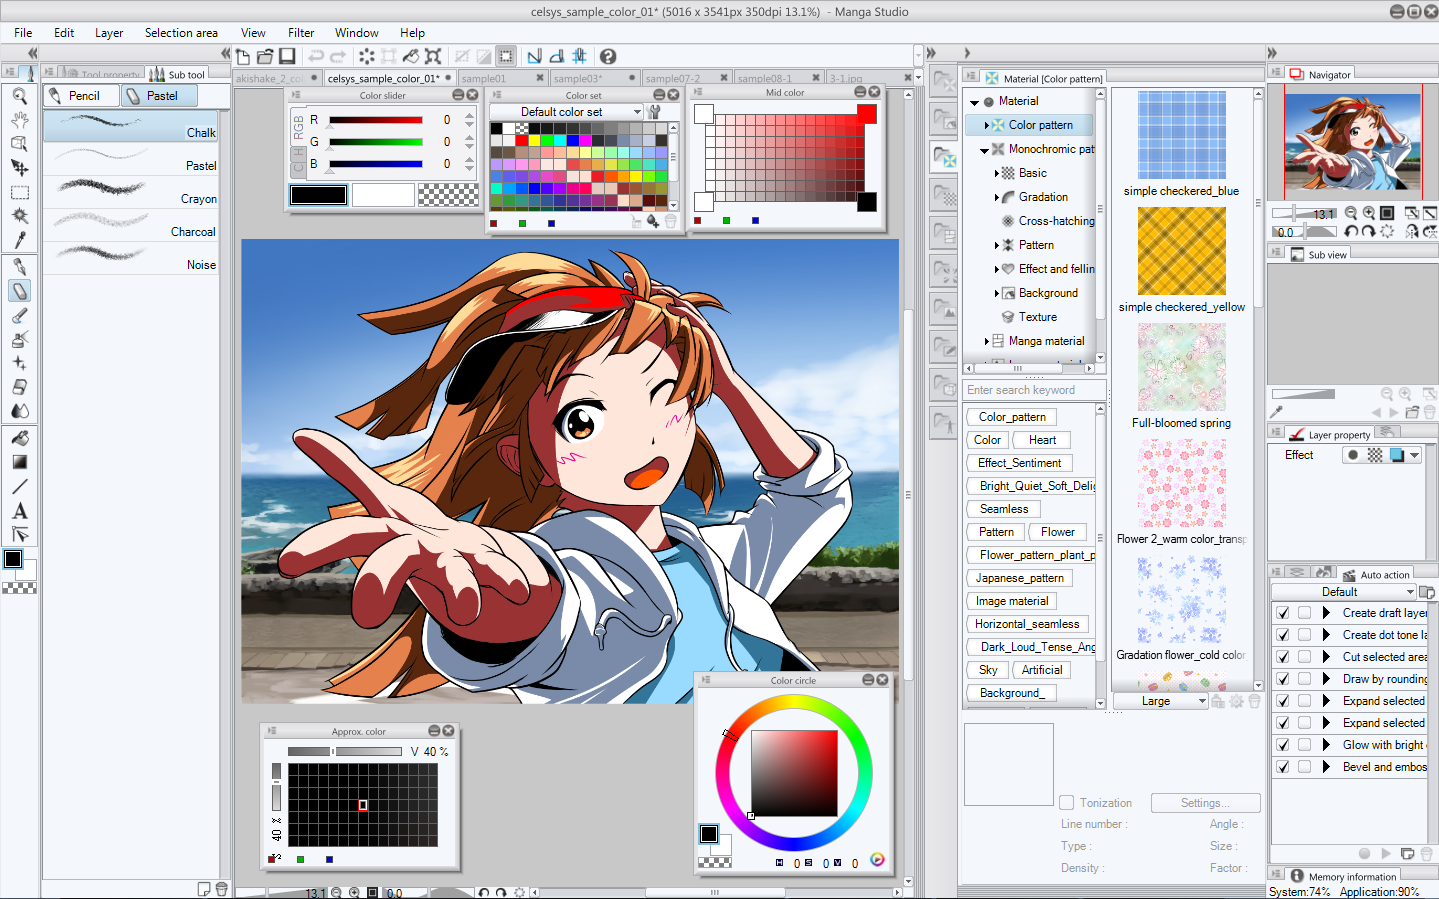 New version of manga studio captures comic art in color Art design software